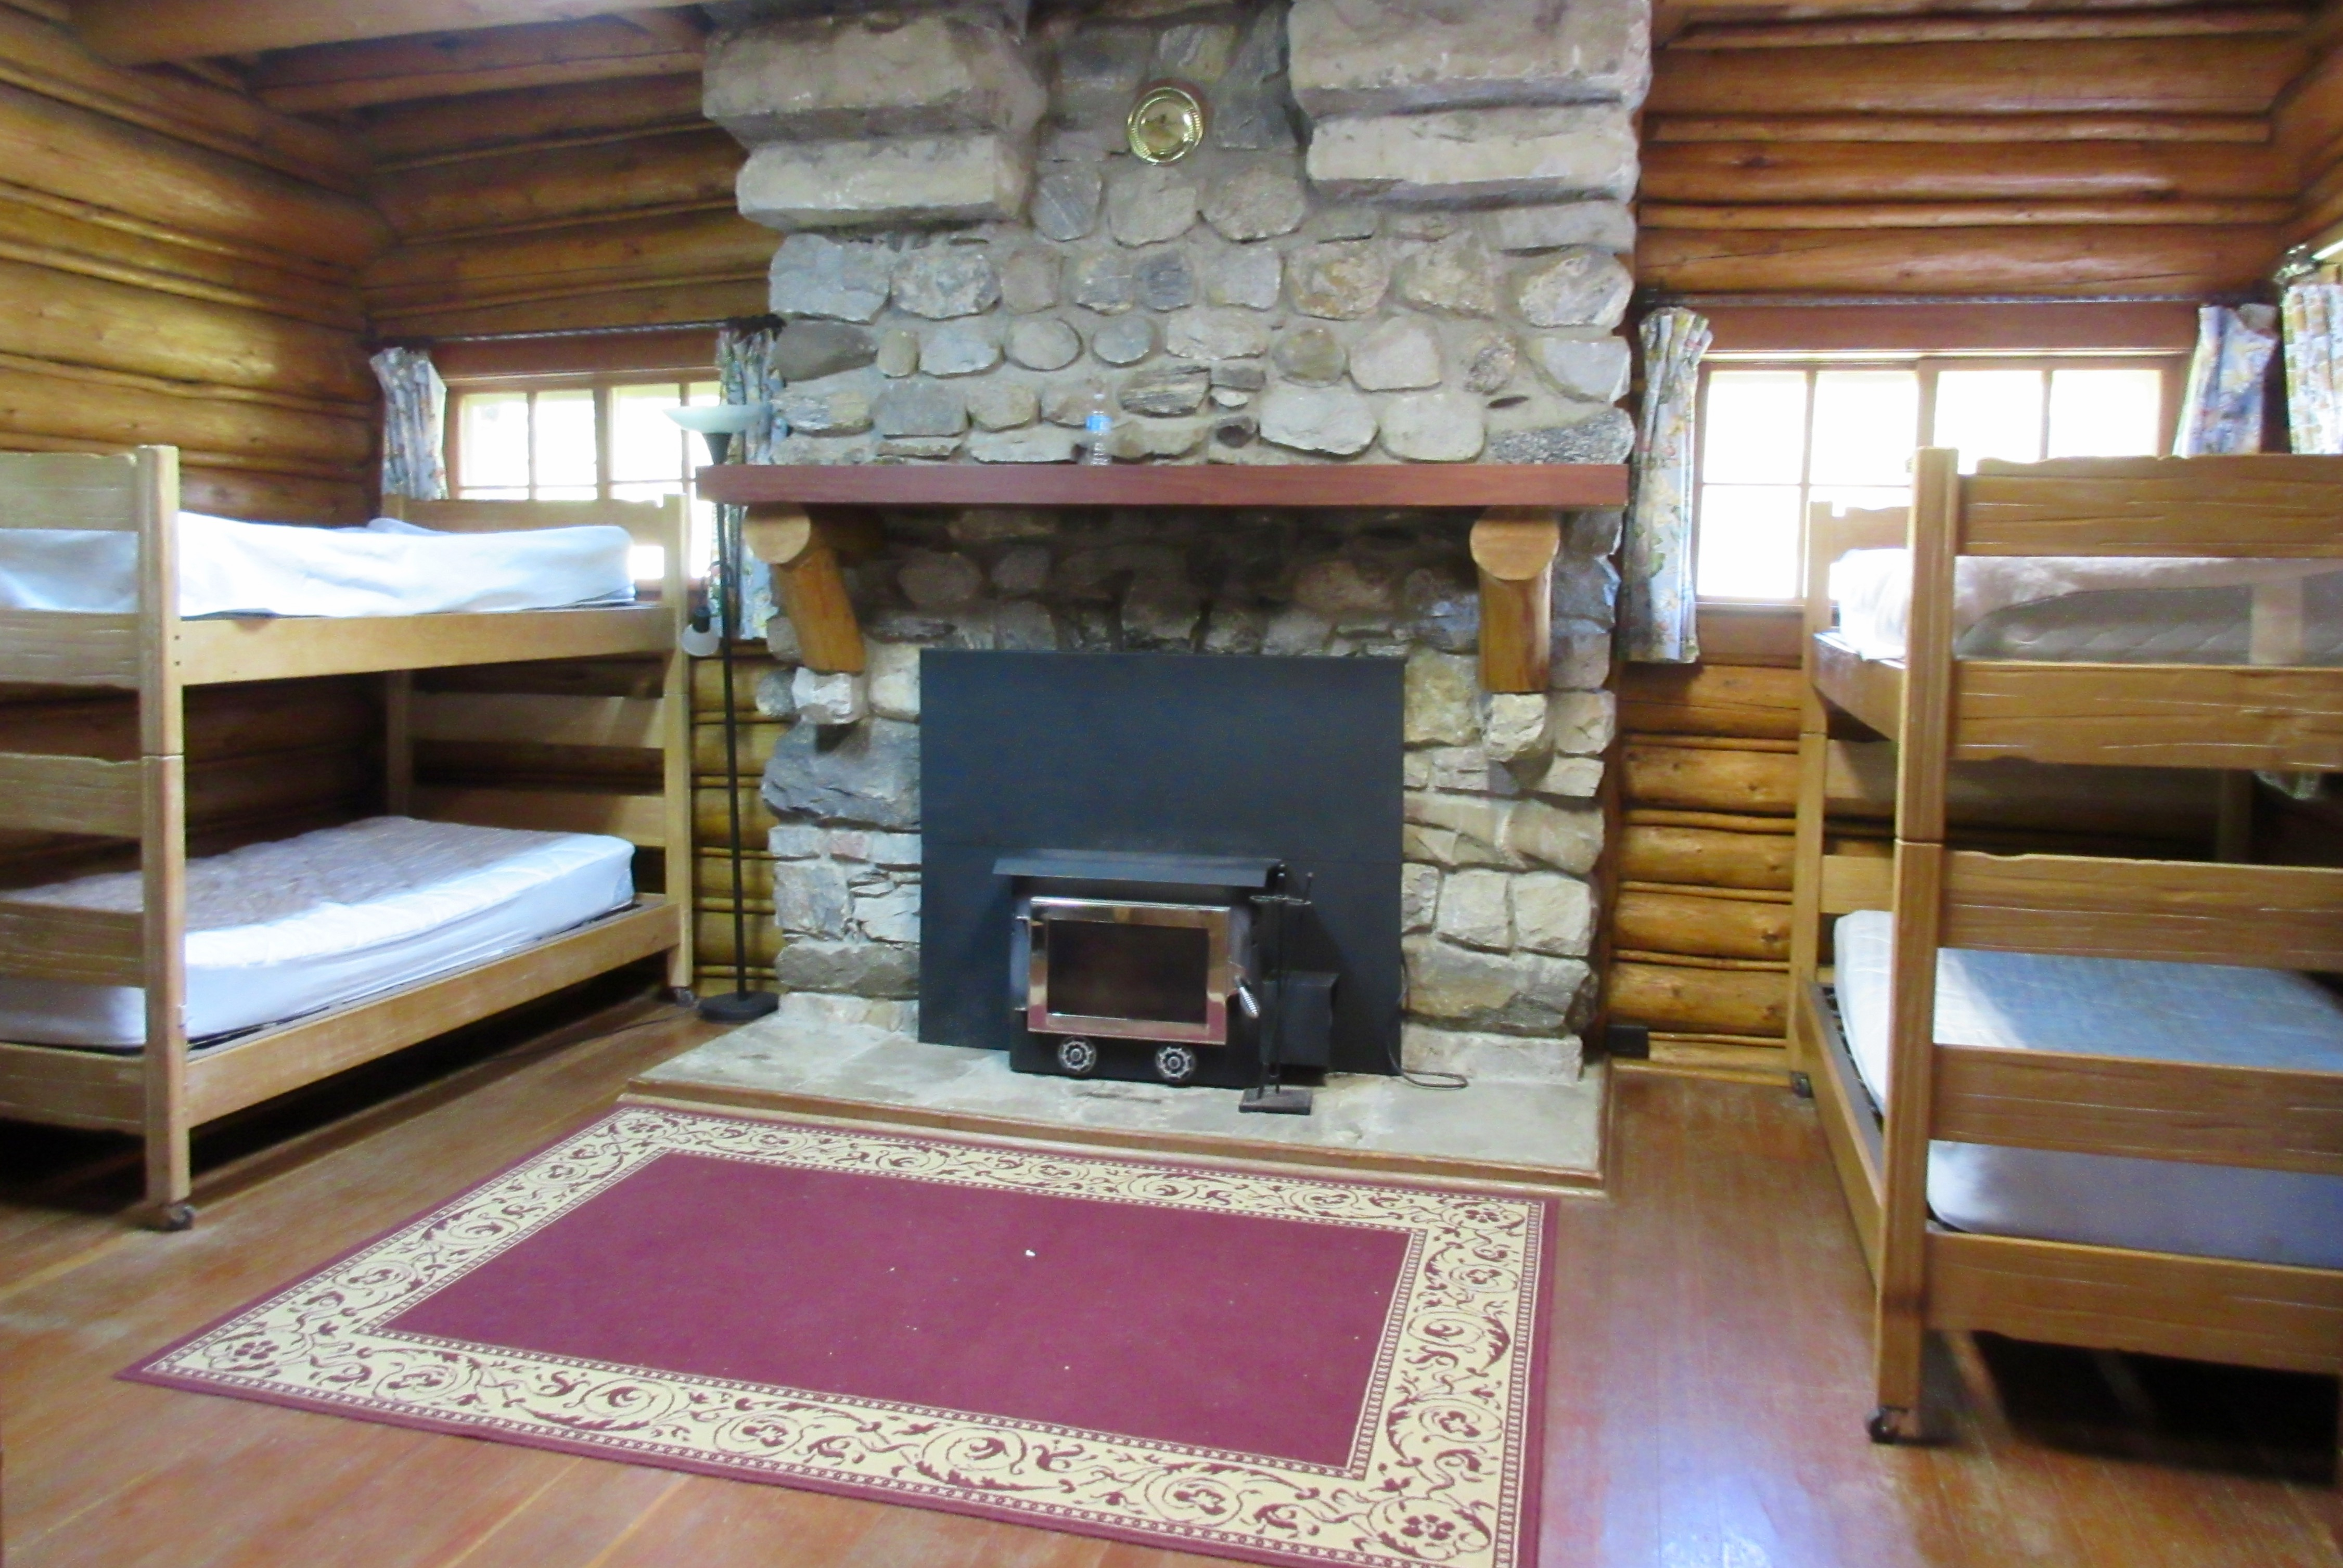 A bedroom in the Johnson Lodge